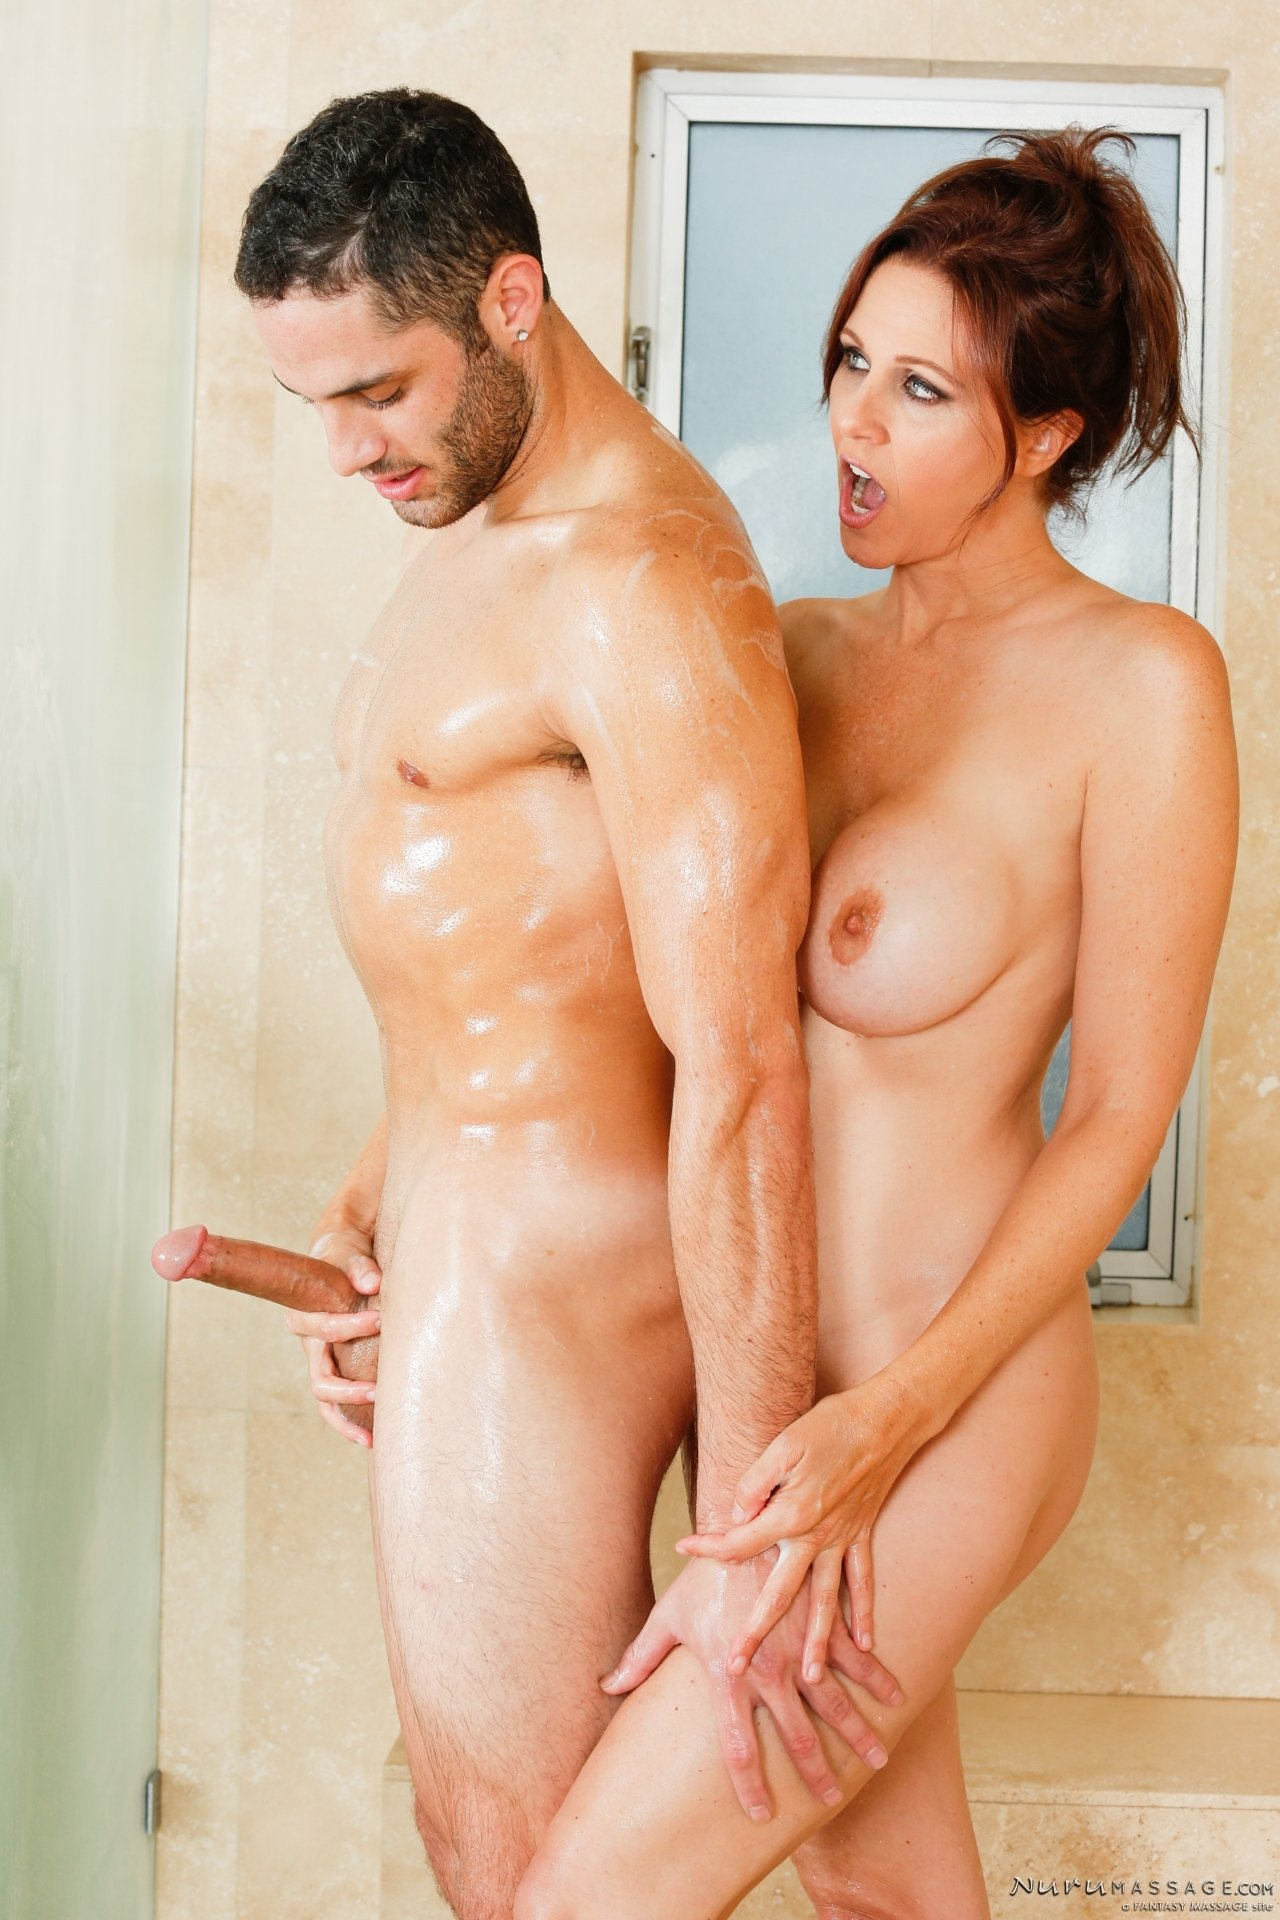 Big load in shower